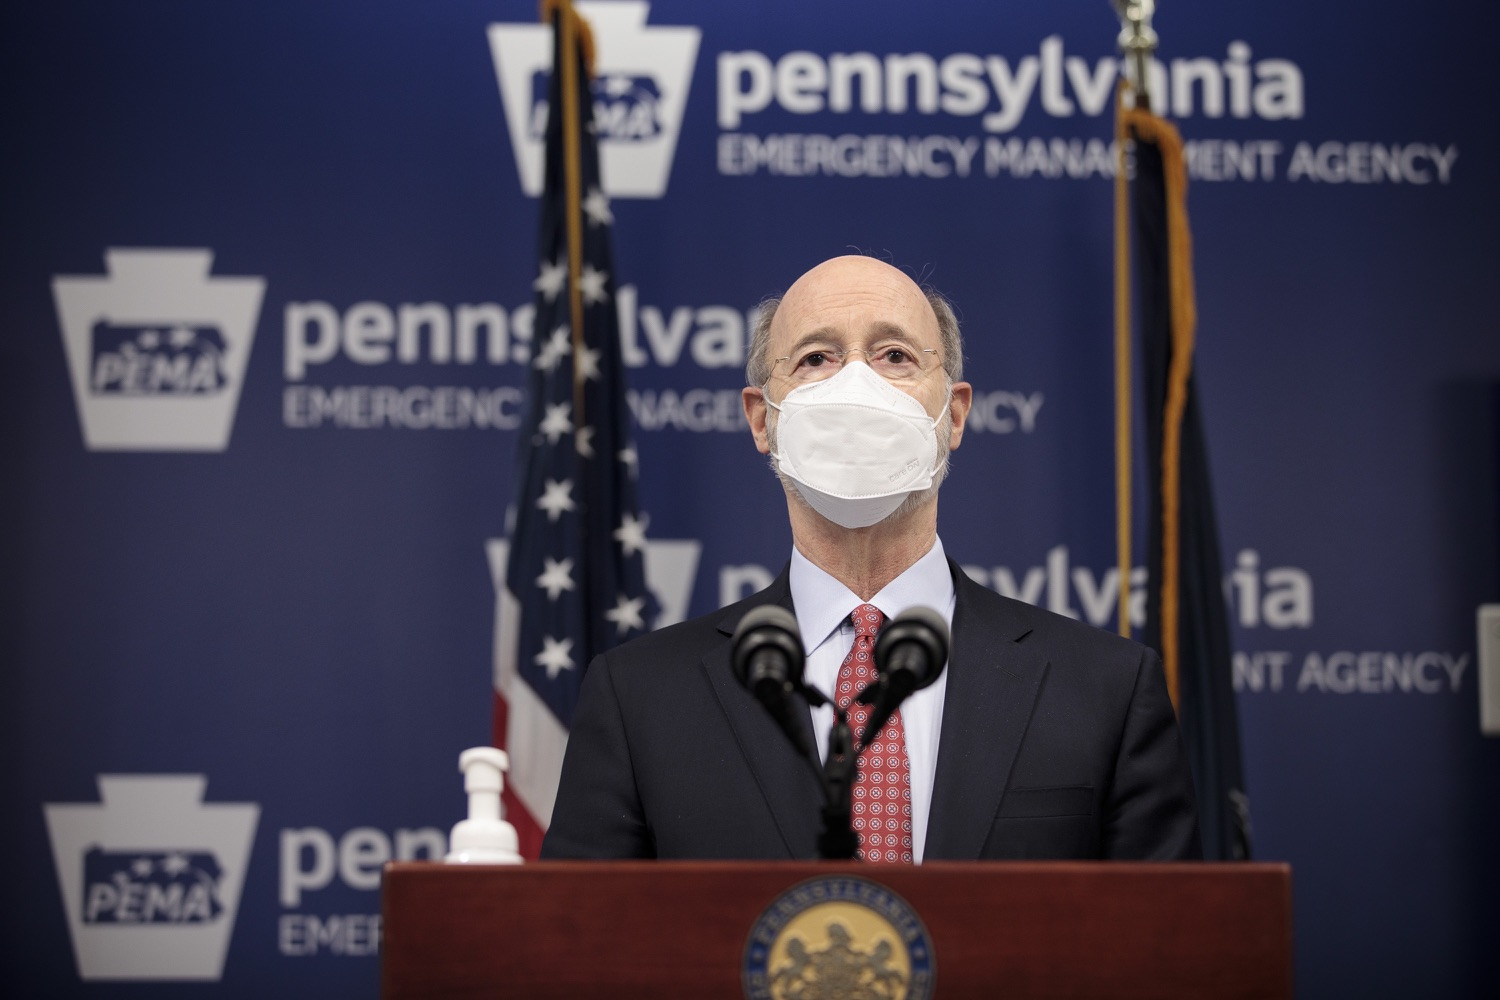 "<a href=""https://filesource.wostreaming.net/commonwealthofpa/photo/18535_gov_nellie_bly_dz_10.jpg"" target=""_blank"">⇣ Download Photo<br></a>Pennsylvania Governor Tom Wolf speaking at the press conference.  Governor Tom Wolf wants to bet on 44,000 students to help them earn a college degree while graduating with less debt and building successful lives in Pennsylvania. Today, the governor held a press conference to discuss how his historic Nellie Bly Scholarship Program would provide need-based financial assistance for students at 14 universities in the states system. Harrisburg, PA  February 17, 2021"